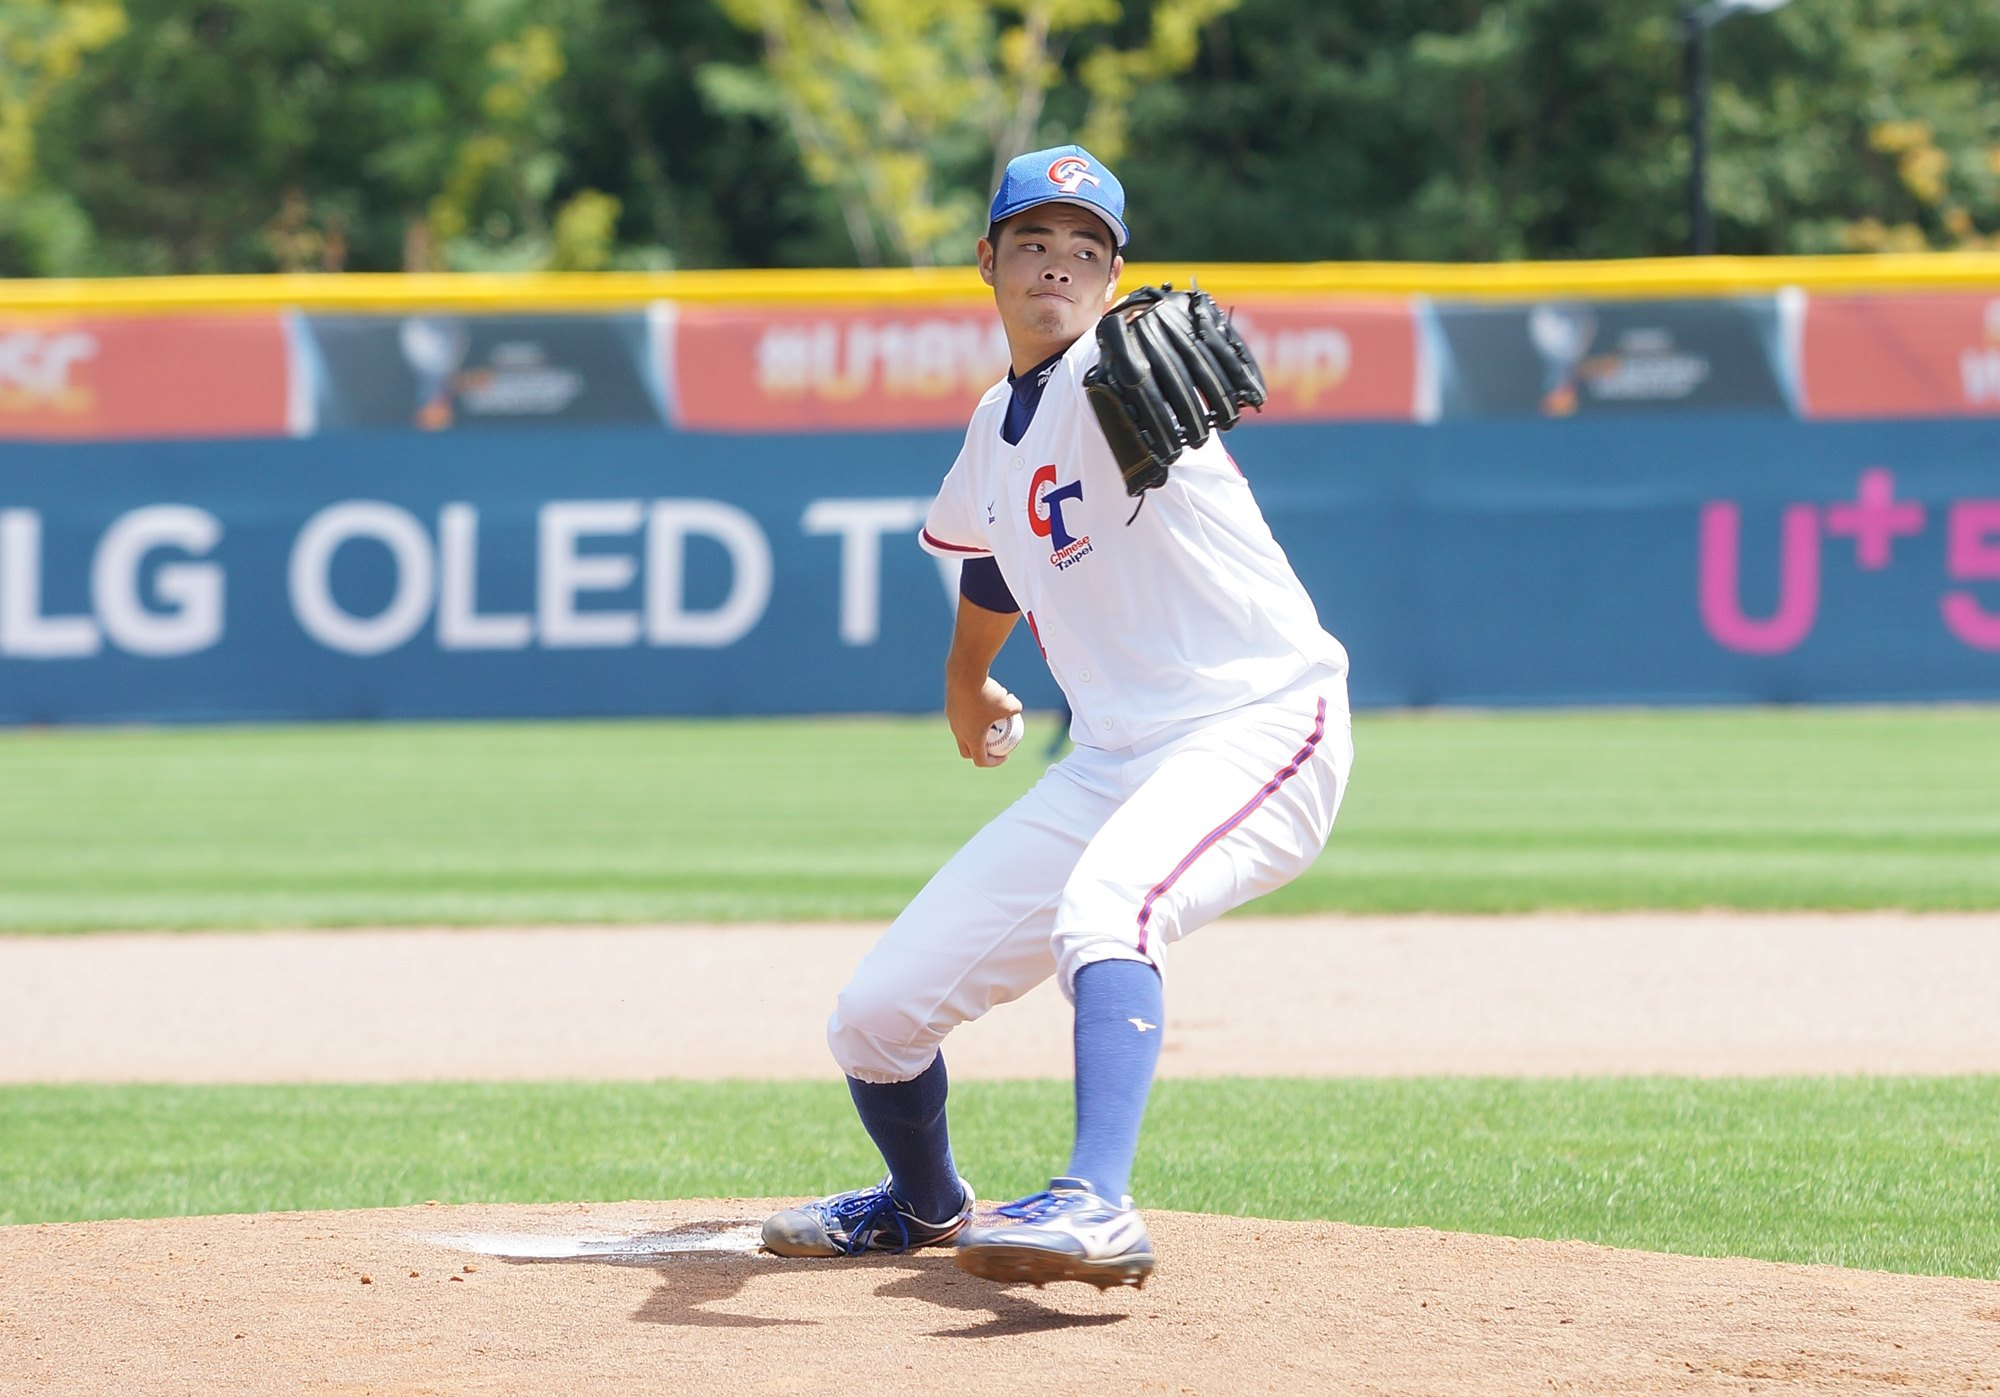 Chen Po Yu gave Chinese Taipei a real chance to win